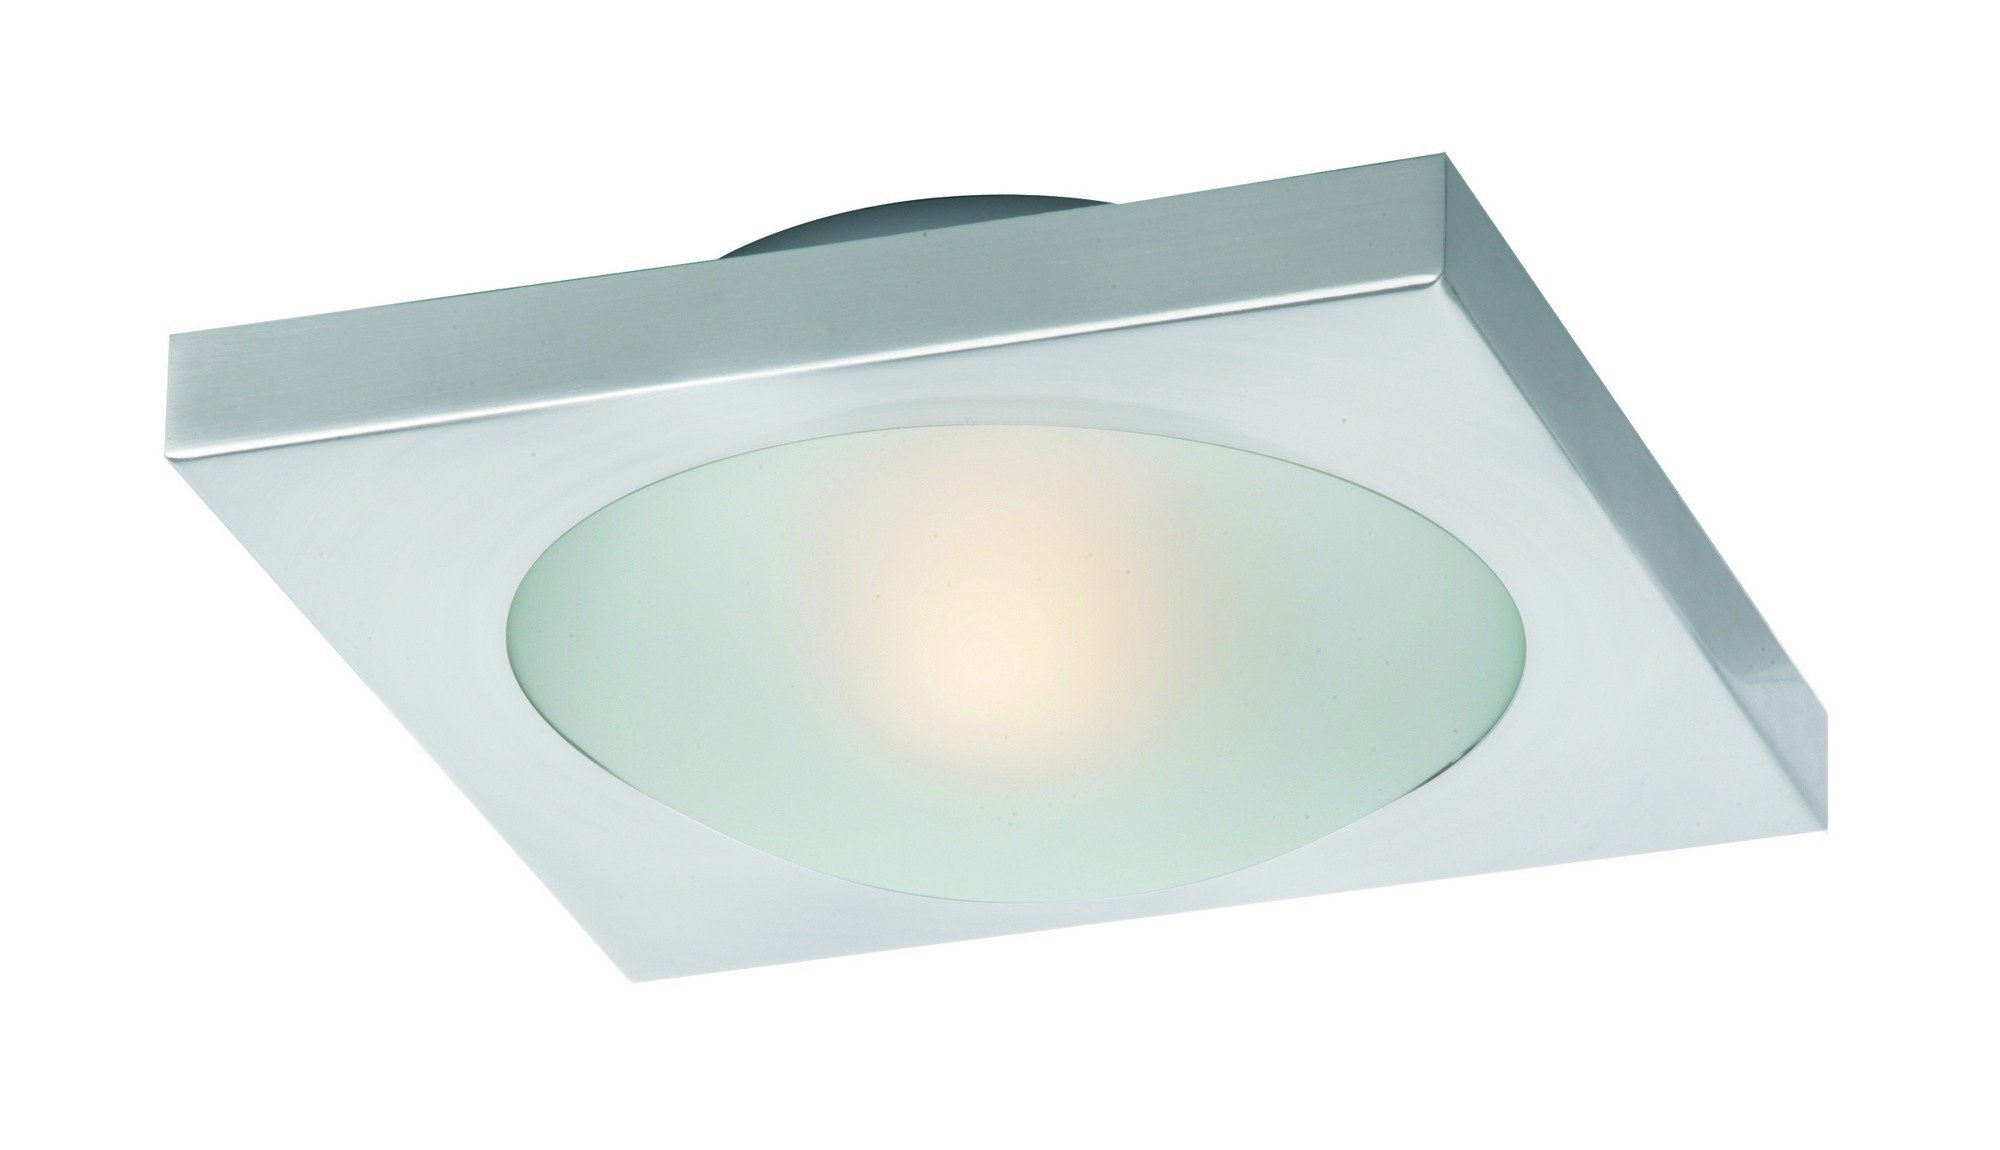 ET2 E53830-09SN Piccolo LED 1-Light LED Flush/Wall Mount, Satin Nickel Finish, Frost White Glass, PCB LED Bulb, 100W Max., Dry Safety Rated, 3000K Color Temp., Low-Voltage Electronic Dimmer, Glass Shade Material, 5495 Rated Lumens